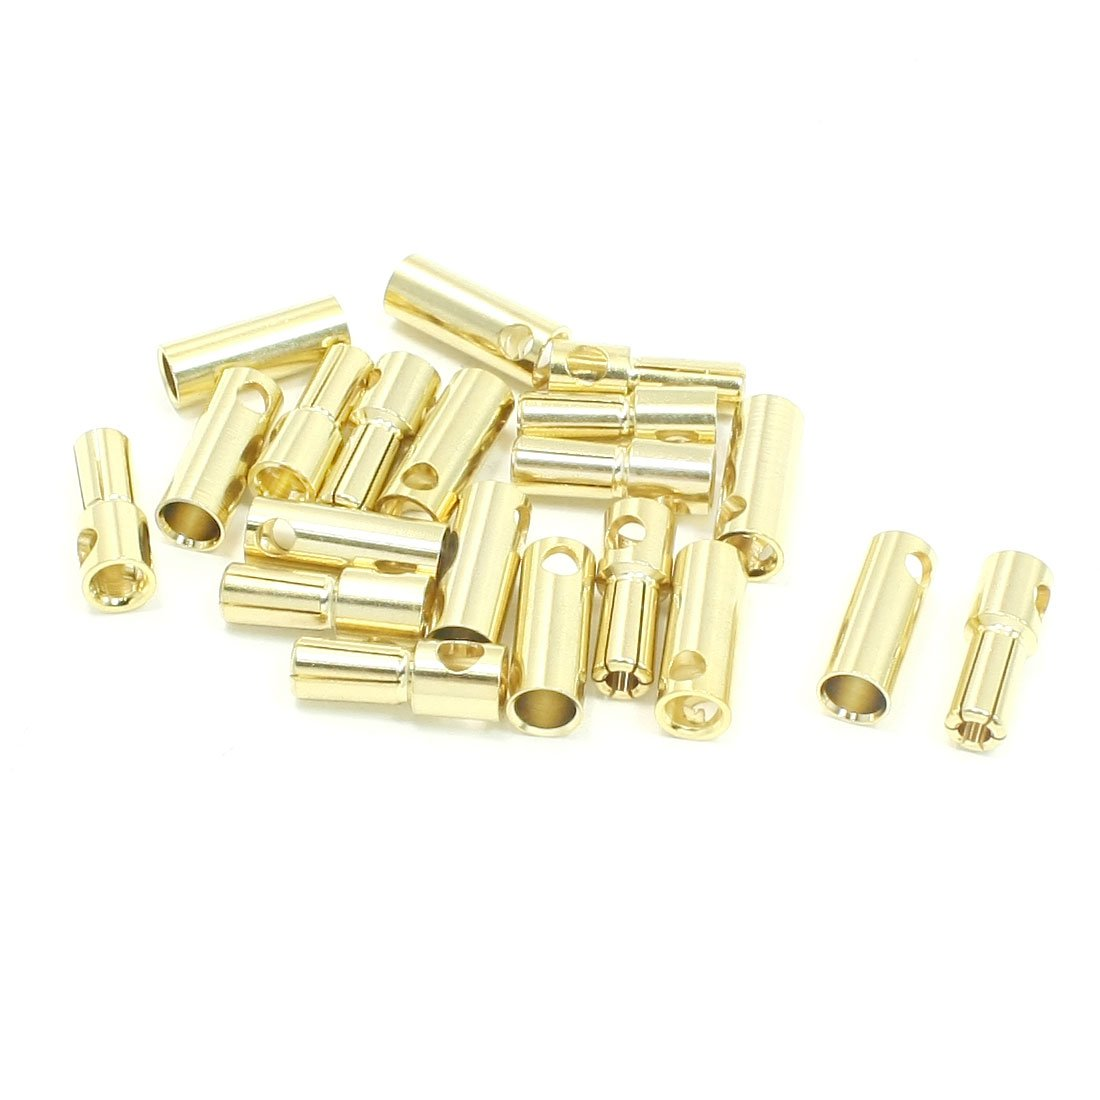 uxcell 10 Pairs Gold Tone Metal 5.5mm Dia Banana Cone Connectors